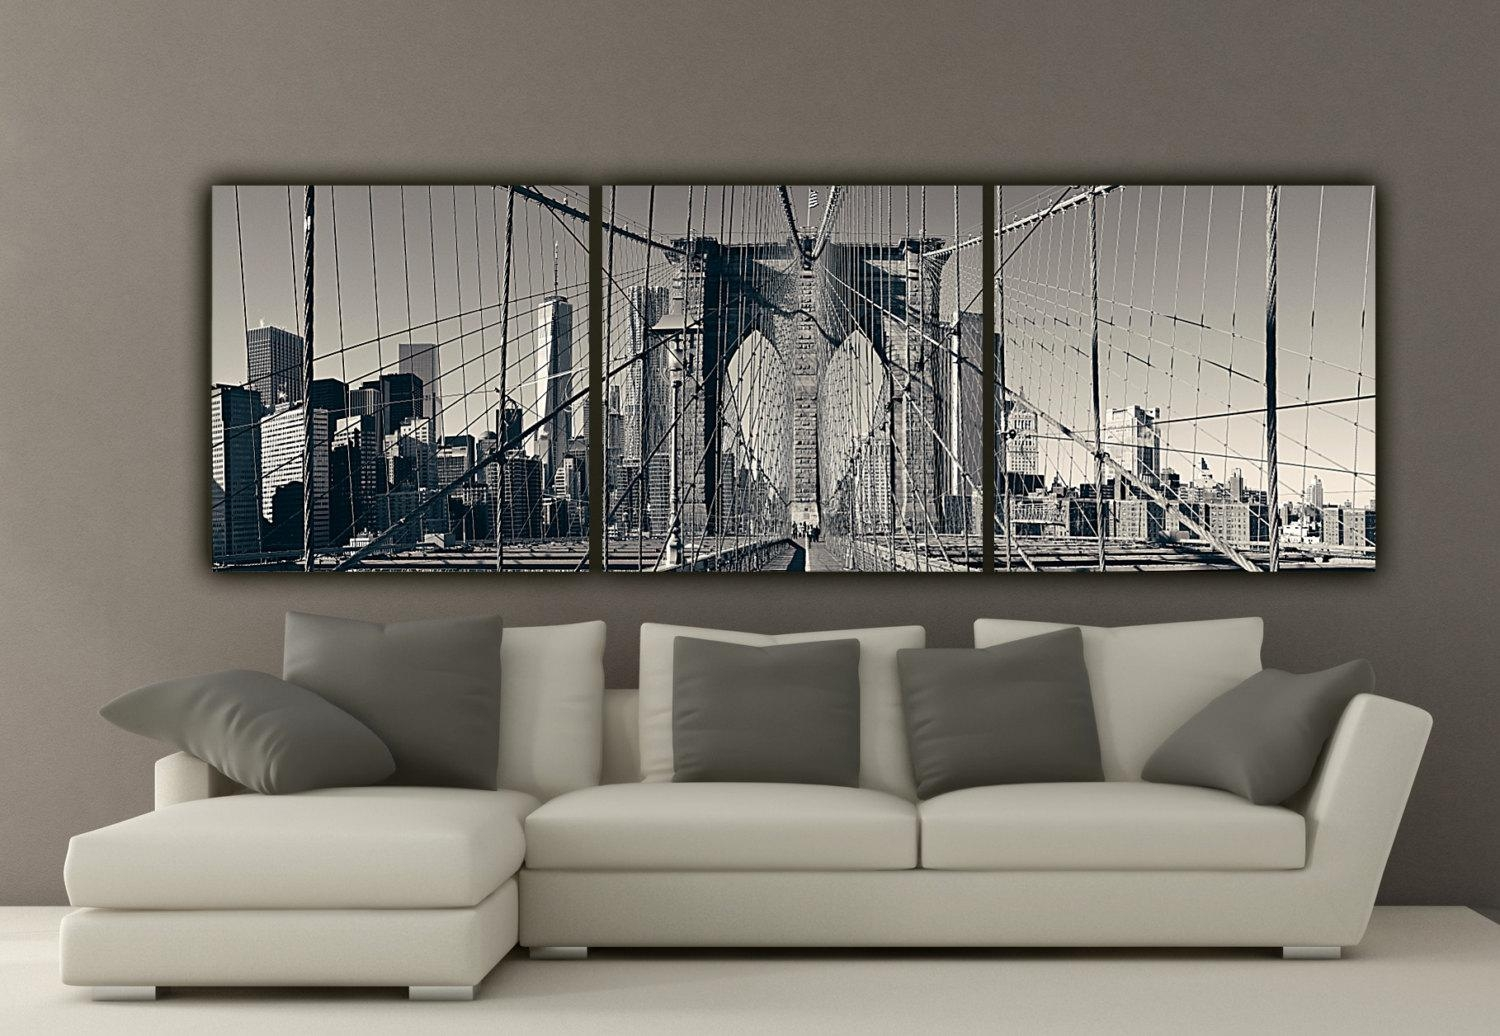 New York Brooklyn Bridge Canvas Wall Art Black And White New For Huge Wall Art Canvas (View 11 of 20)